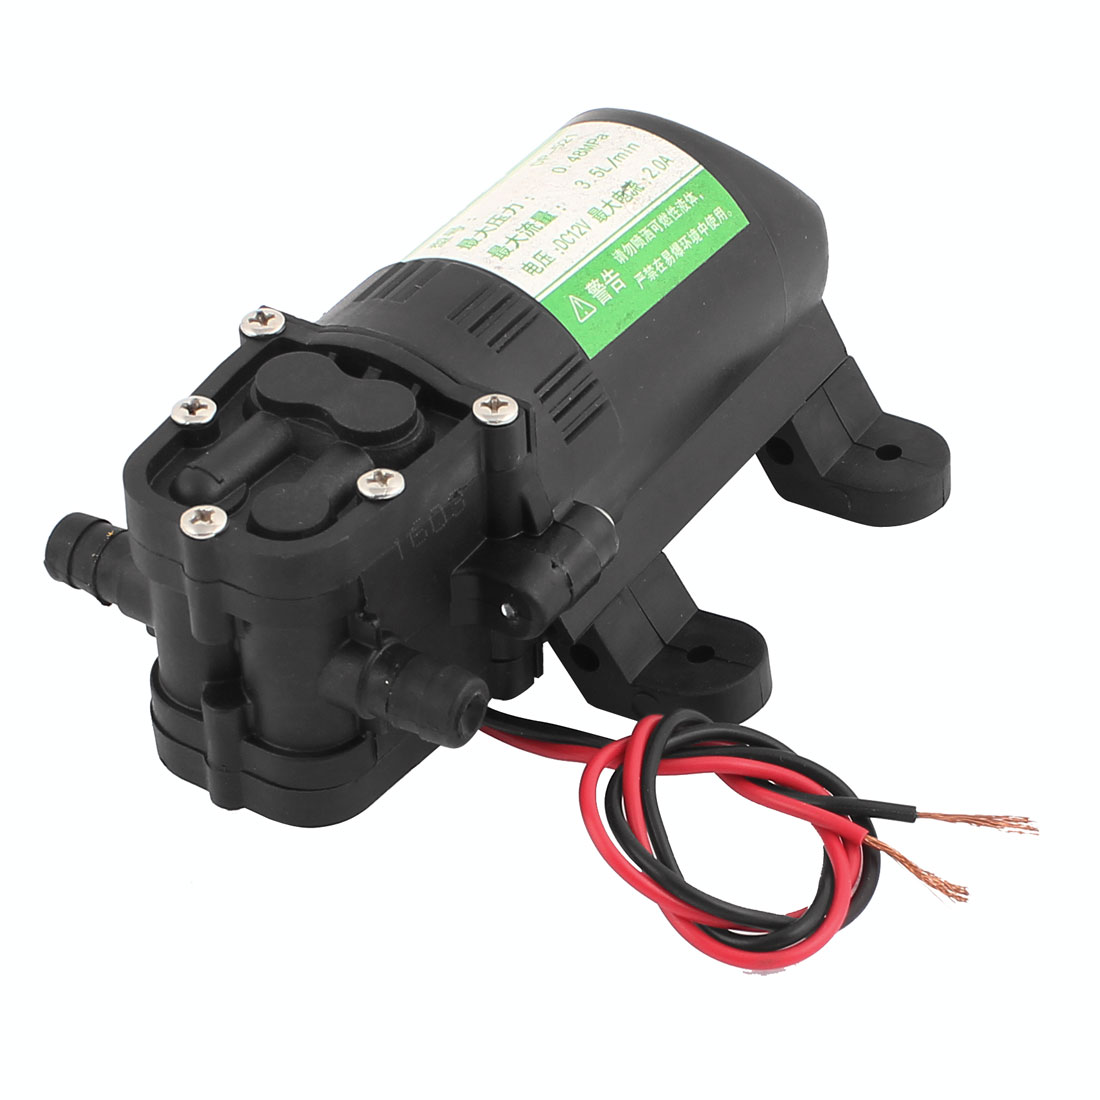 DC 12V Micro Diaphragm Self Priming Water Pump 3.5L/min